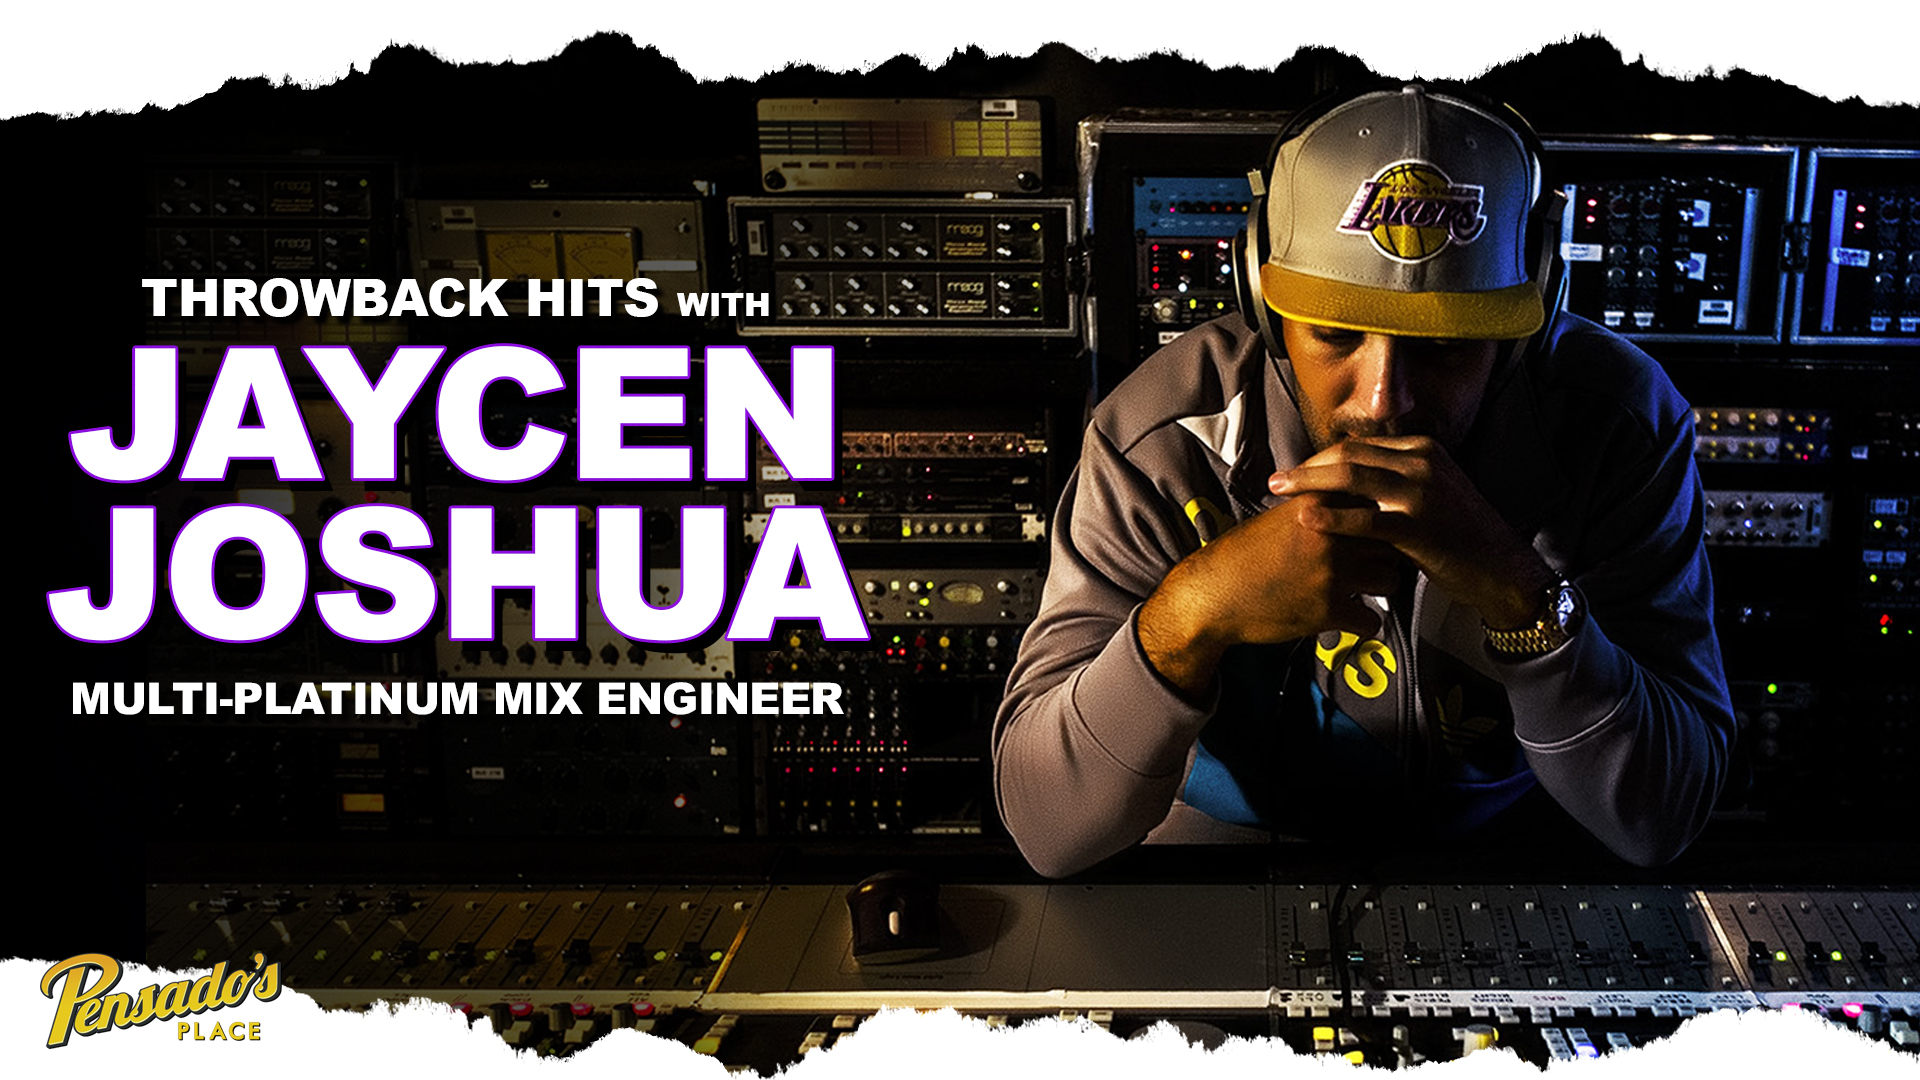 Throwback Hits with Multi-Platinum Mix Engineer, Jaycen Joshua